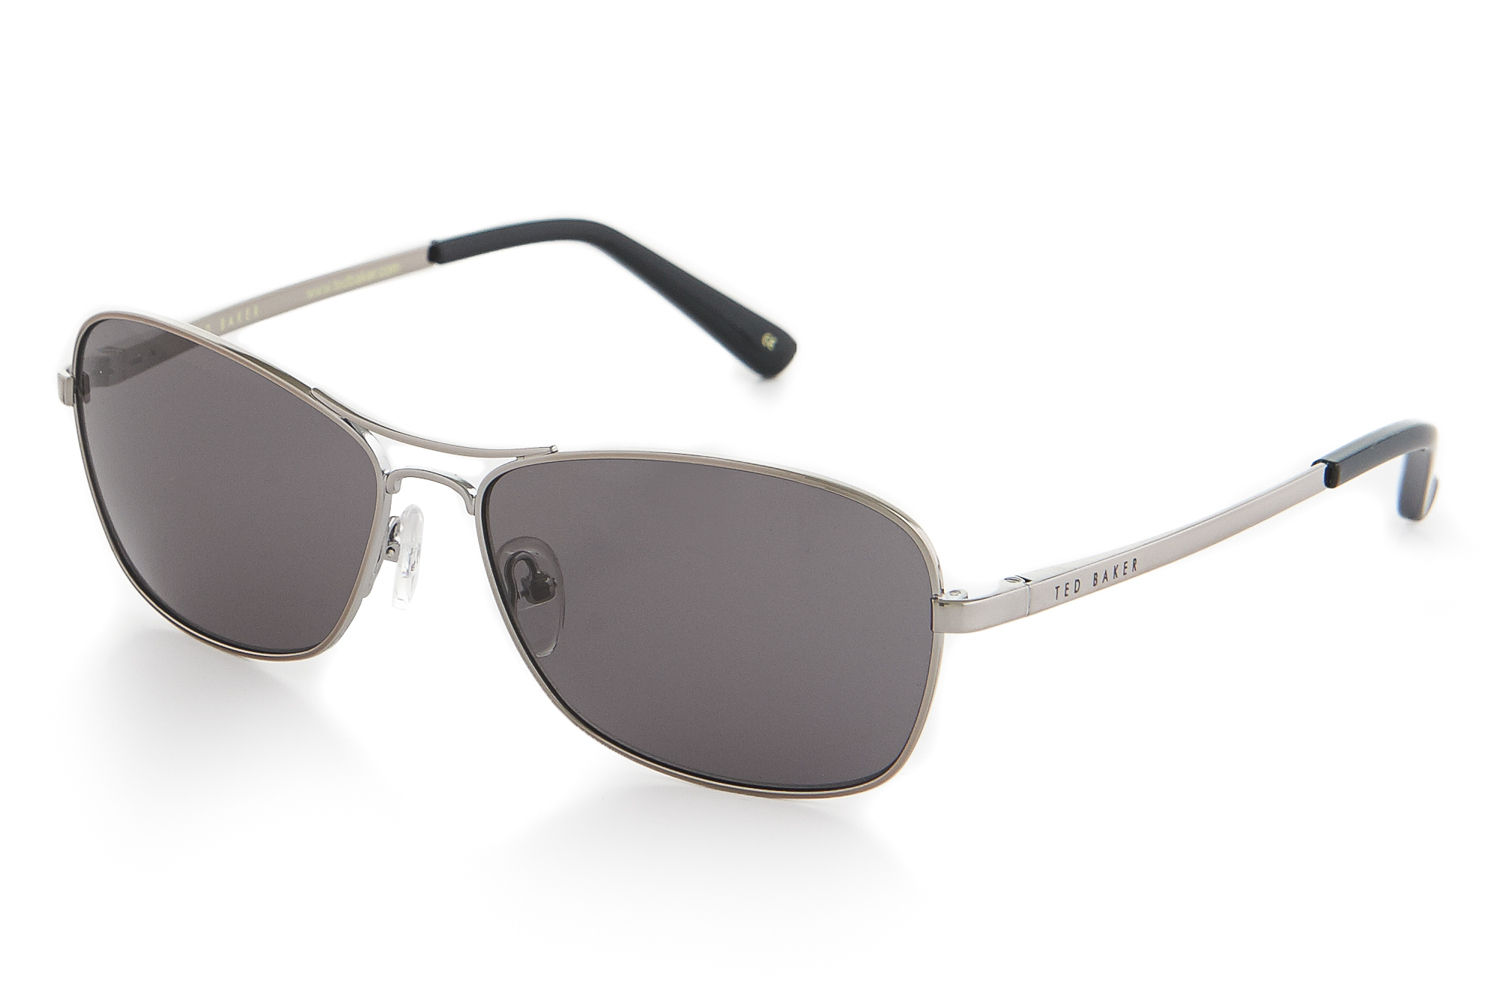 bb212f0251bf Ted Baker Gunmetal Aix Sunglasses in Gray for Men - Lyst